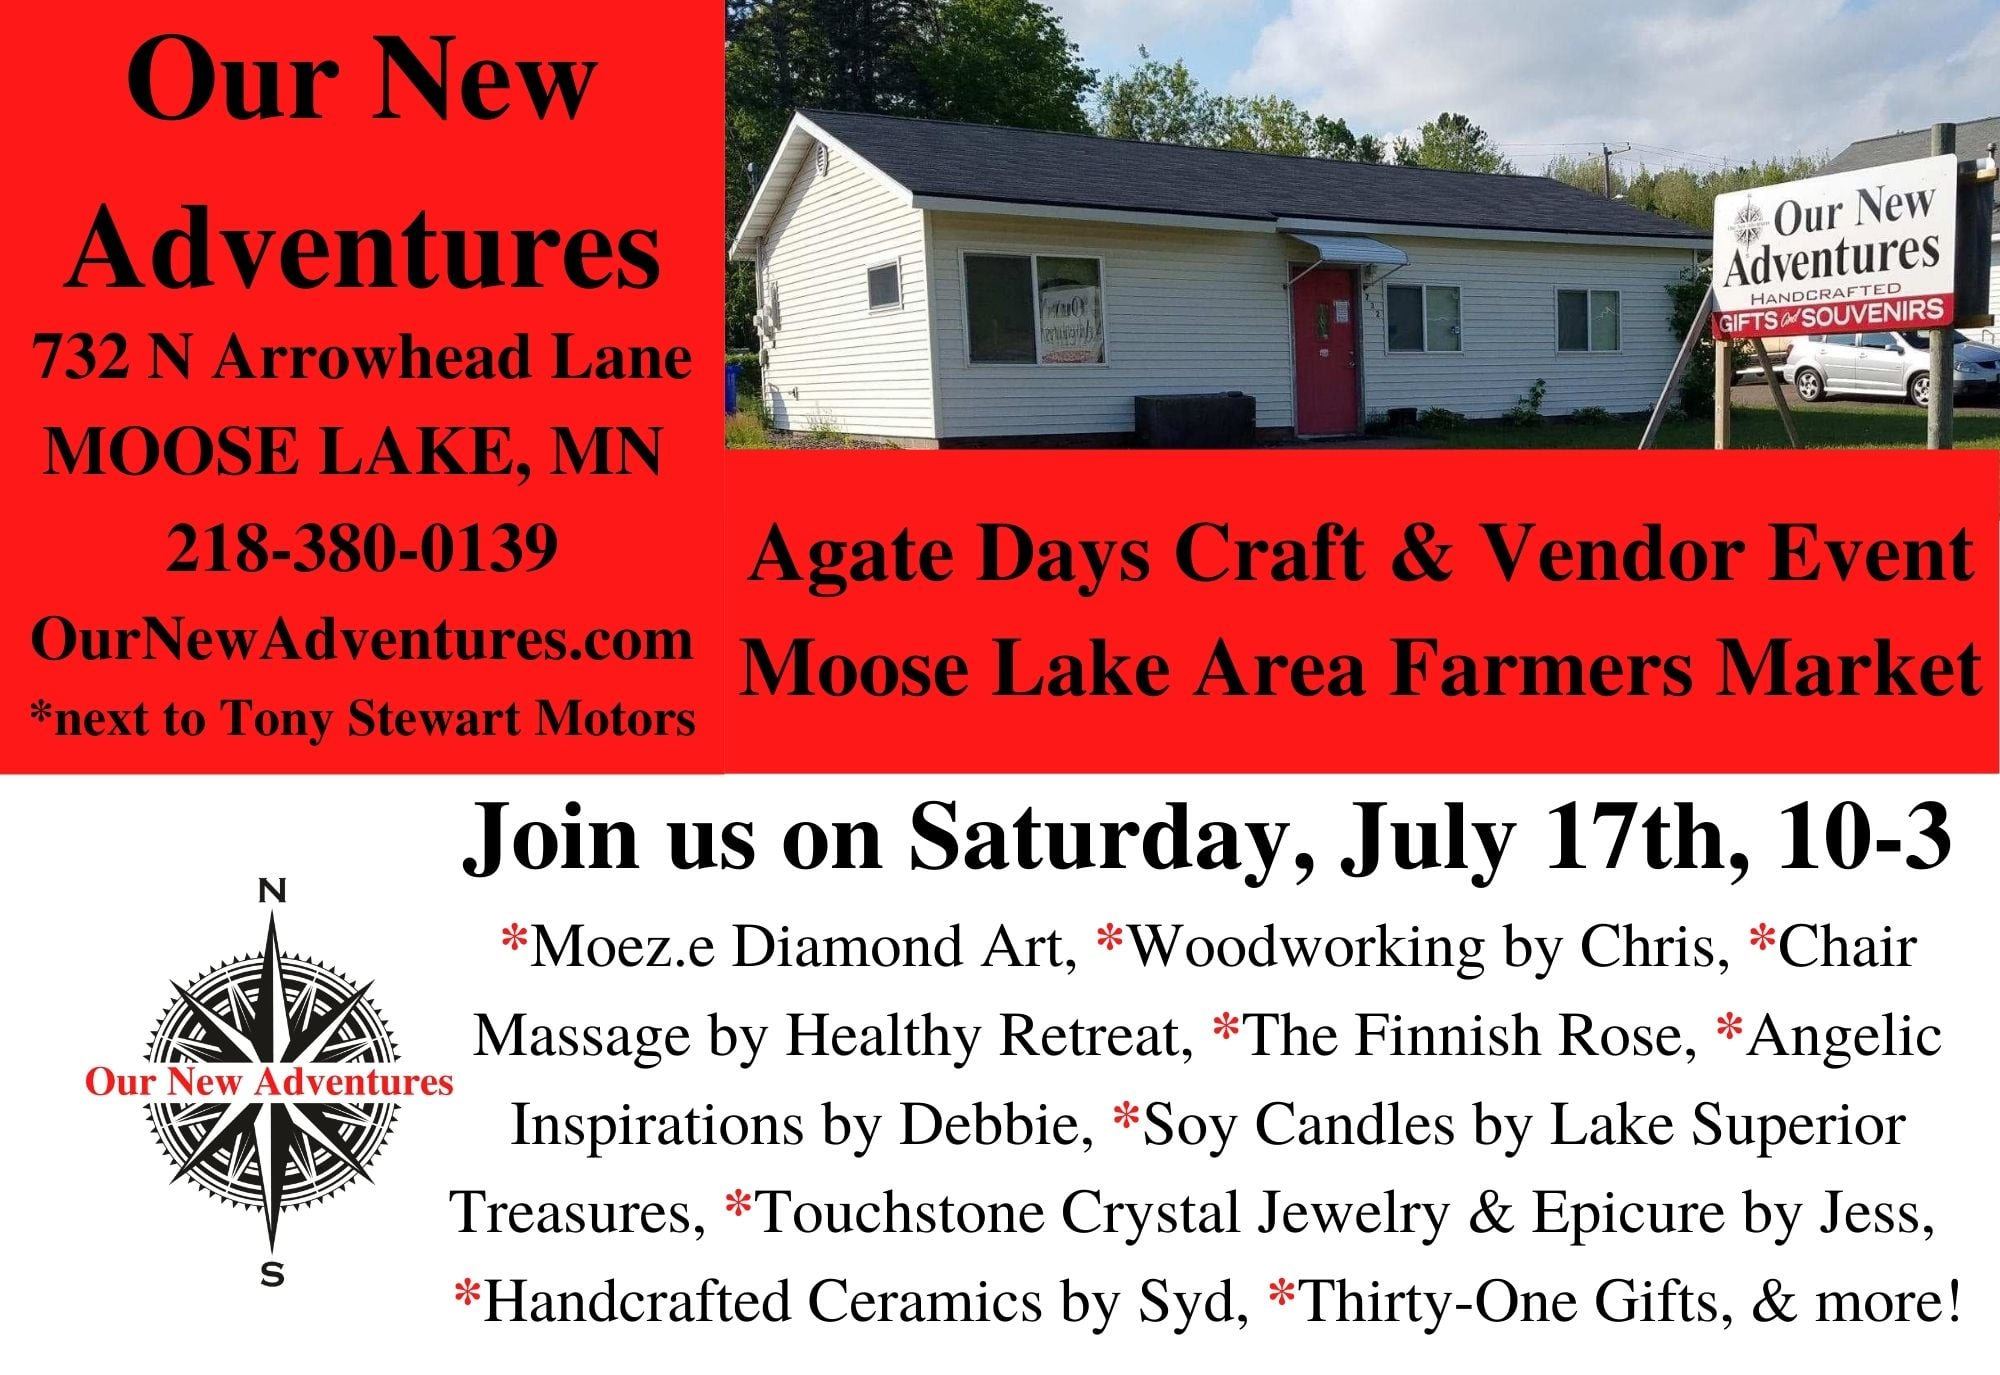 Our New Adventures is hosting the Farmer's Market on Saturday, July 17th and Agate Days Craft and Vendor Event from 10-am-3pm